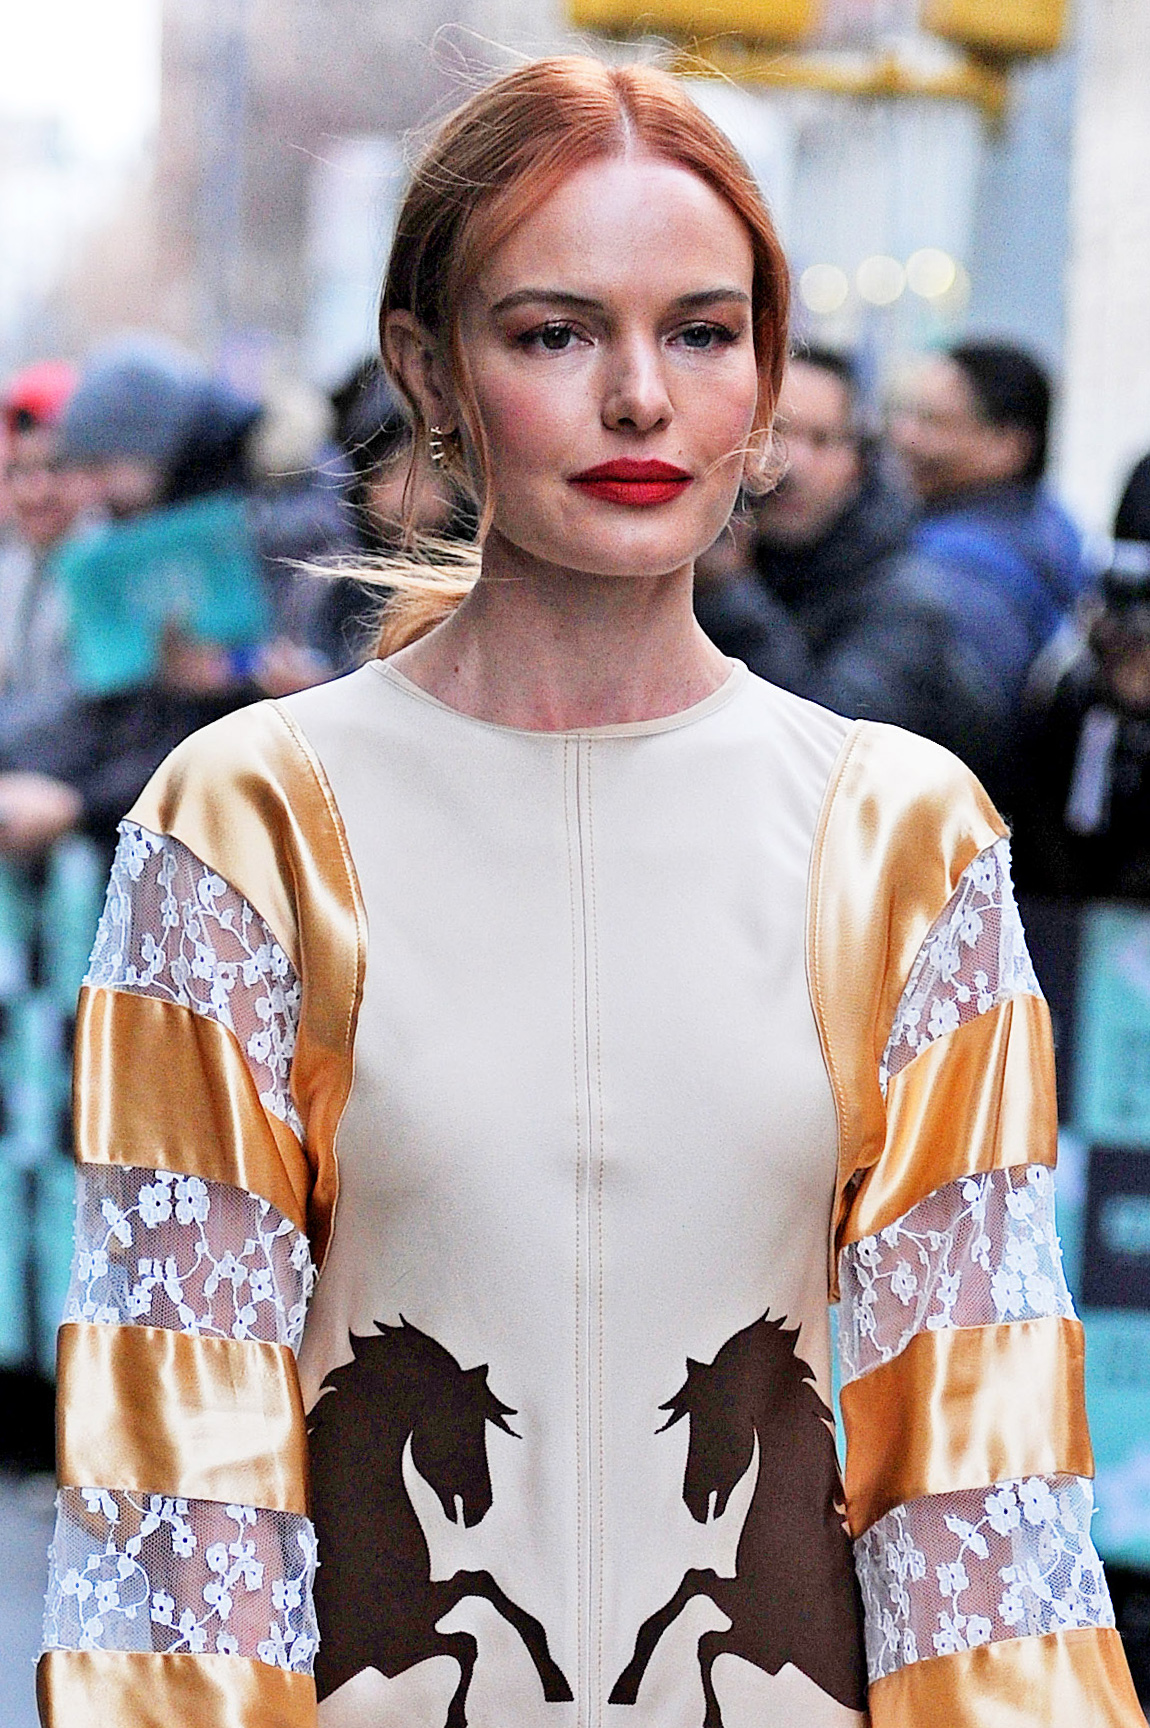 kate-bosworth-dazzles-in-a-gold-and-beige-dress-with-horses-printed-at-the-waist-as-she-is-seen-arriving-at-aol-new-york